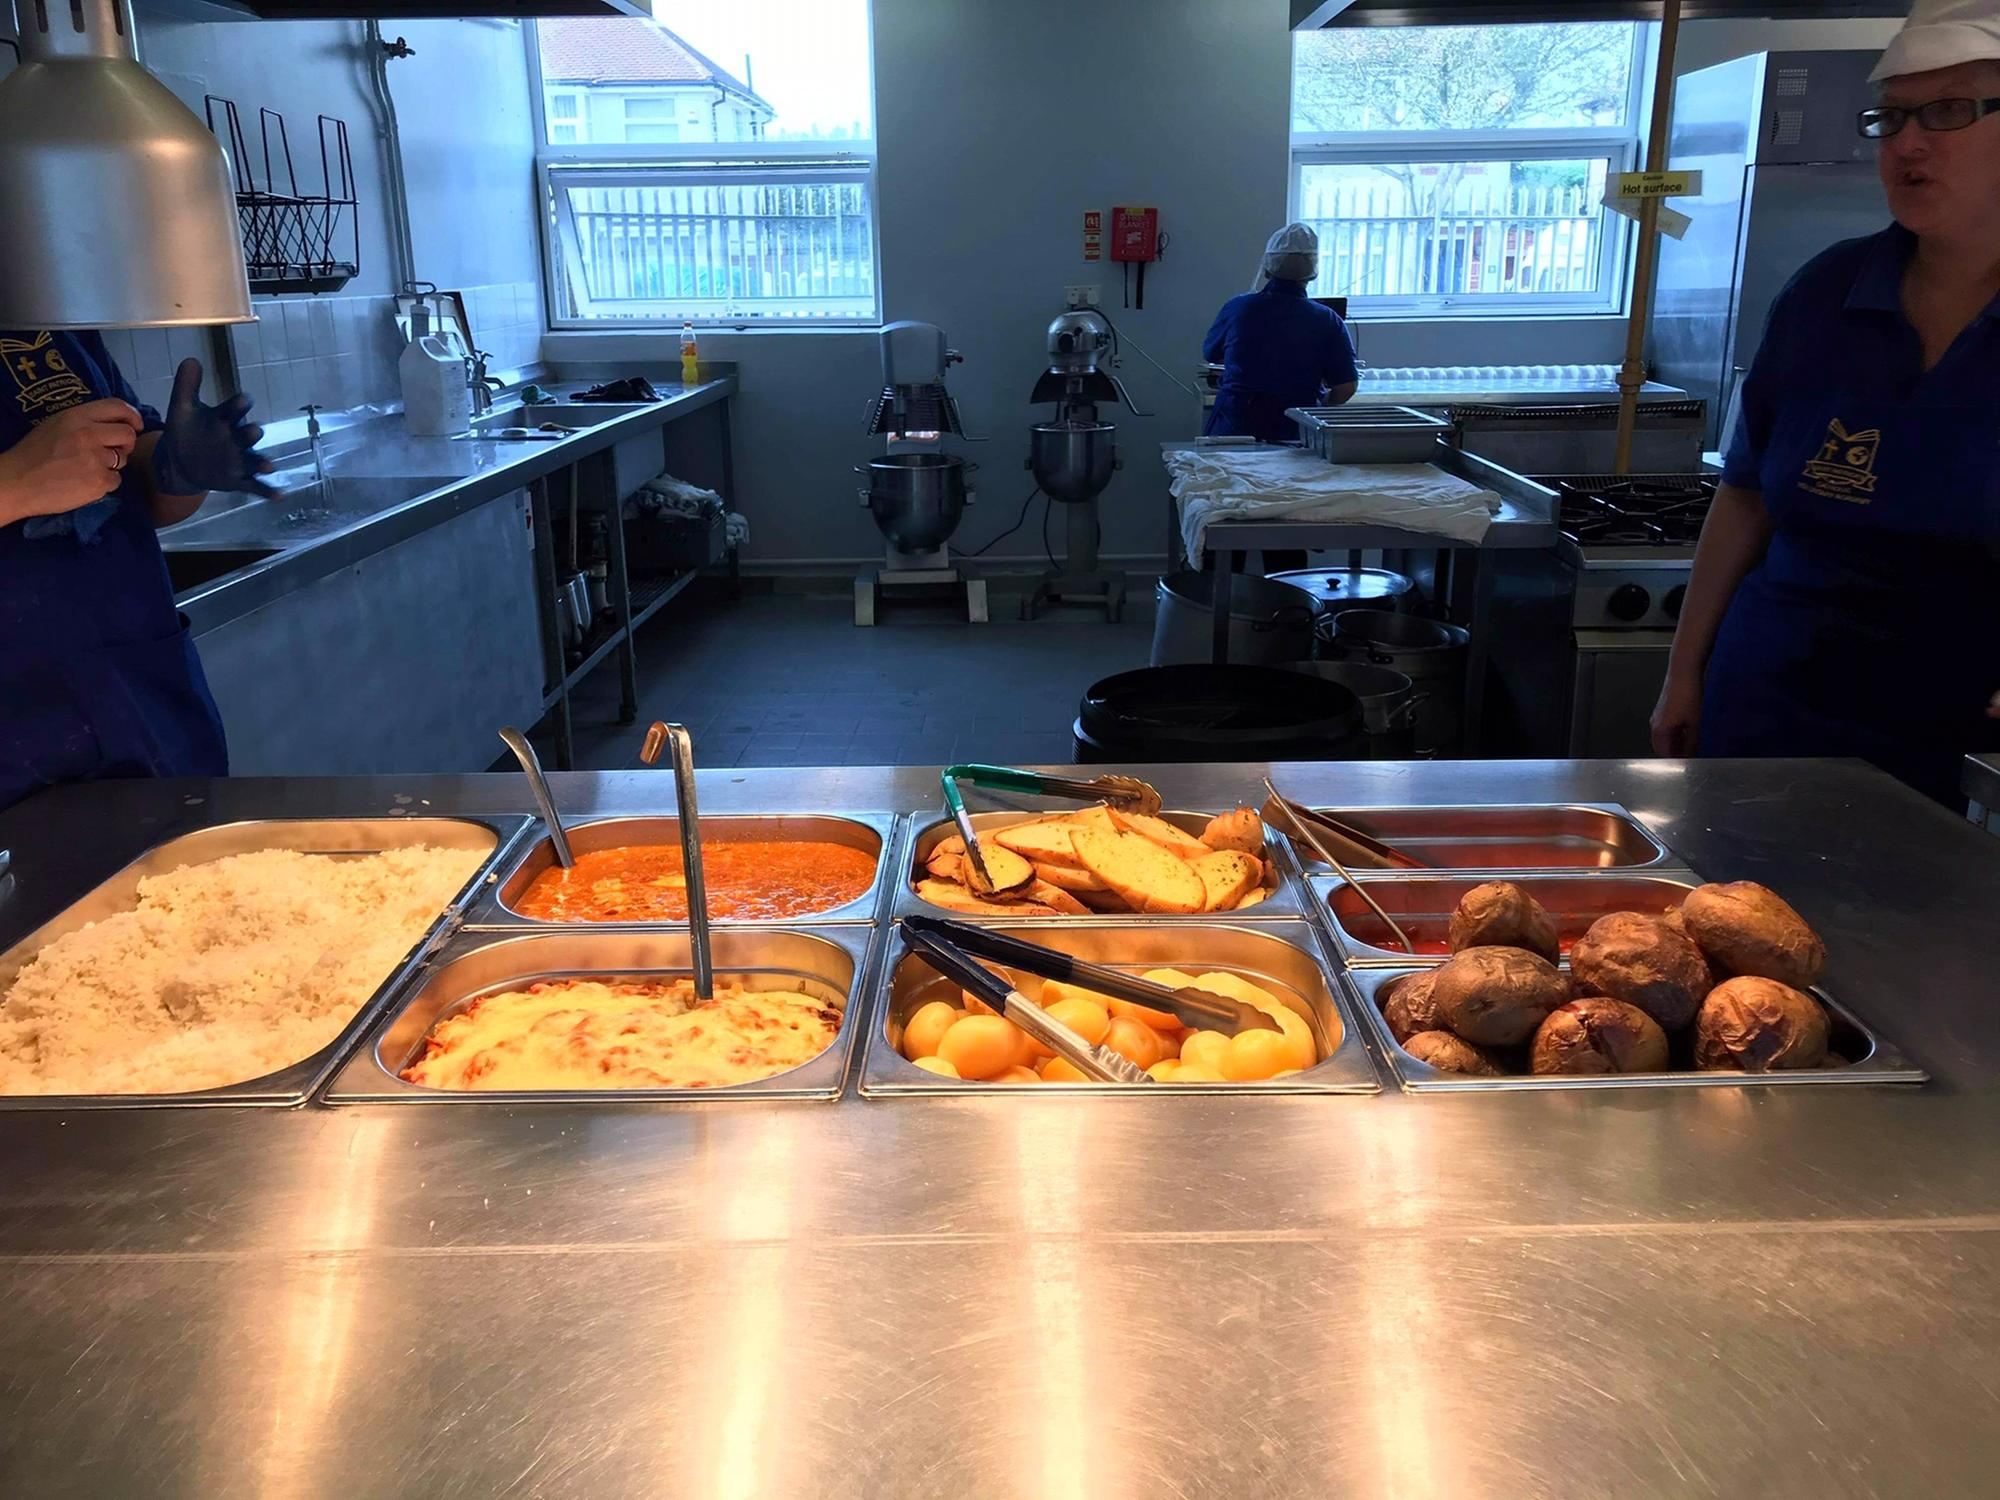 Sheffield school brings catering in-house in effort to offer free hot meals to all pupils